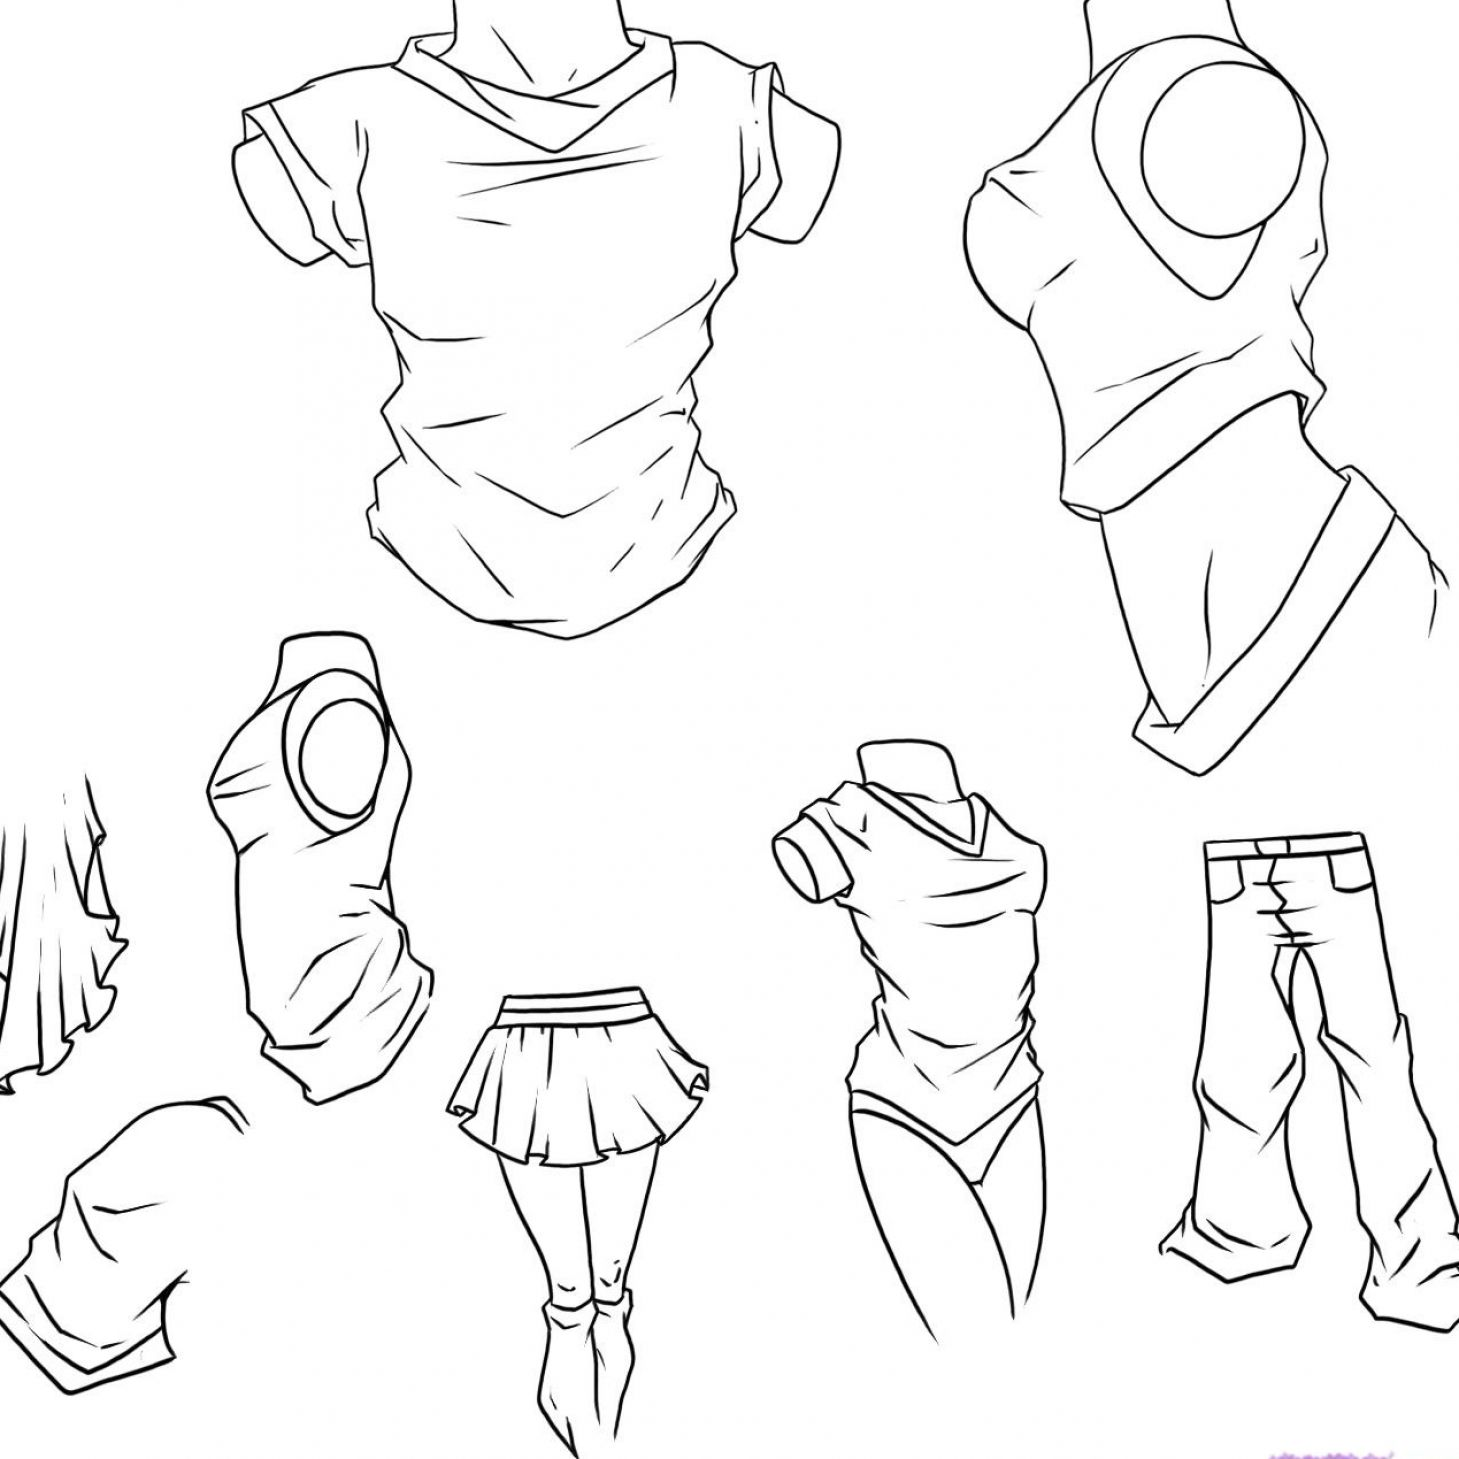 How to Draw Anime Clothes Drawing